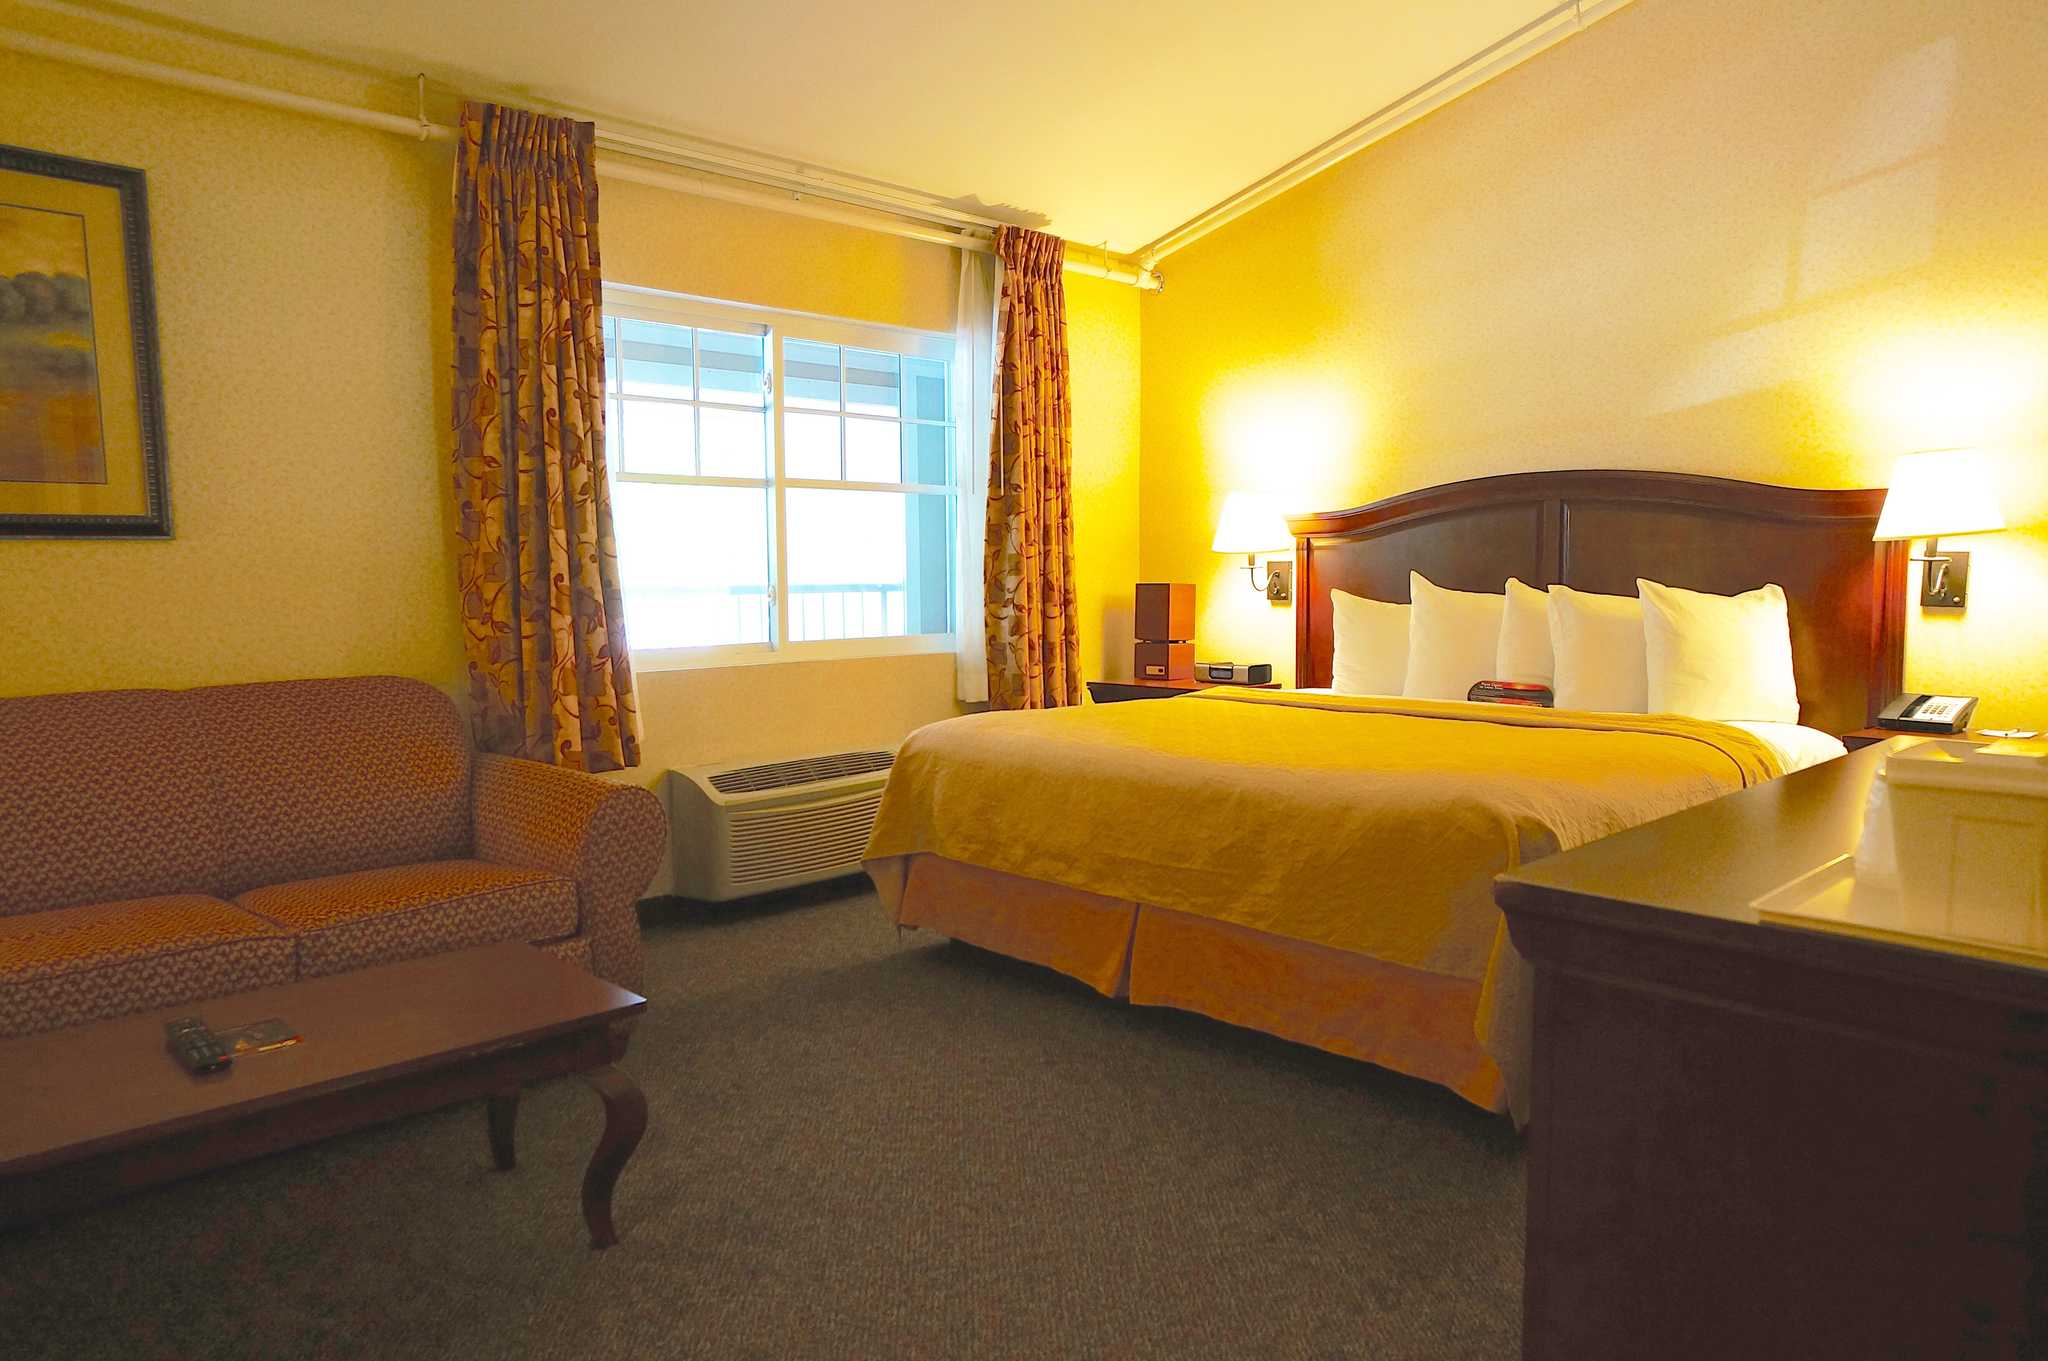 Hotel coupons augusta maine : Jetblue coupon code april 2018